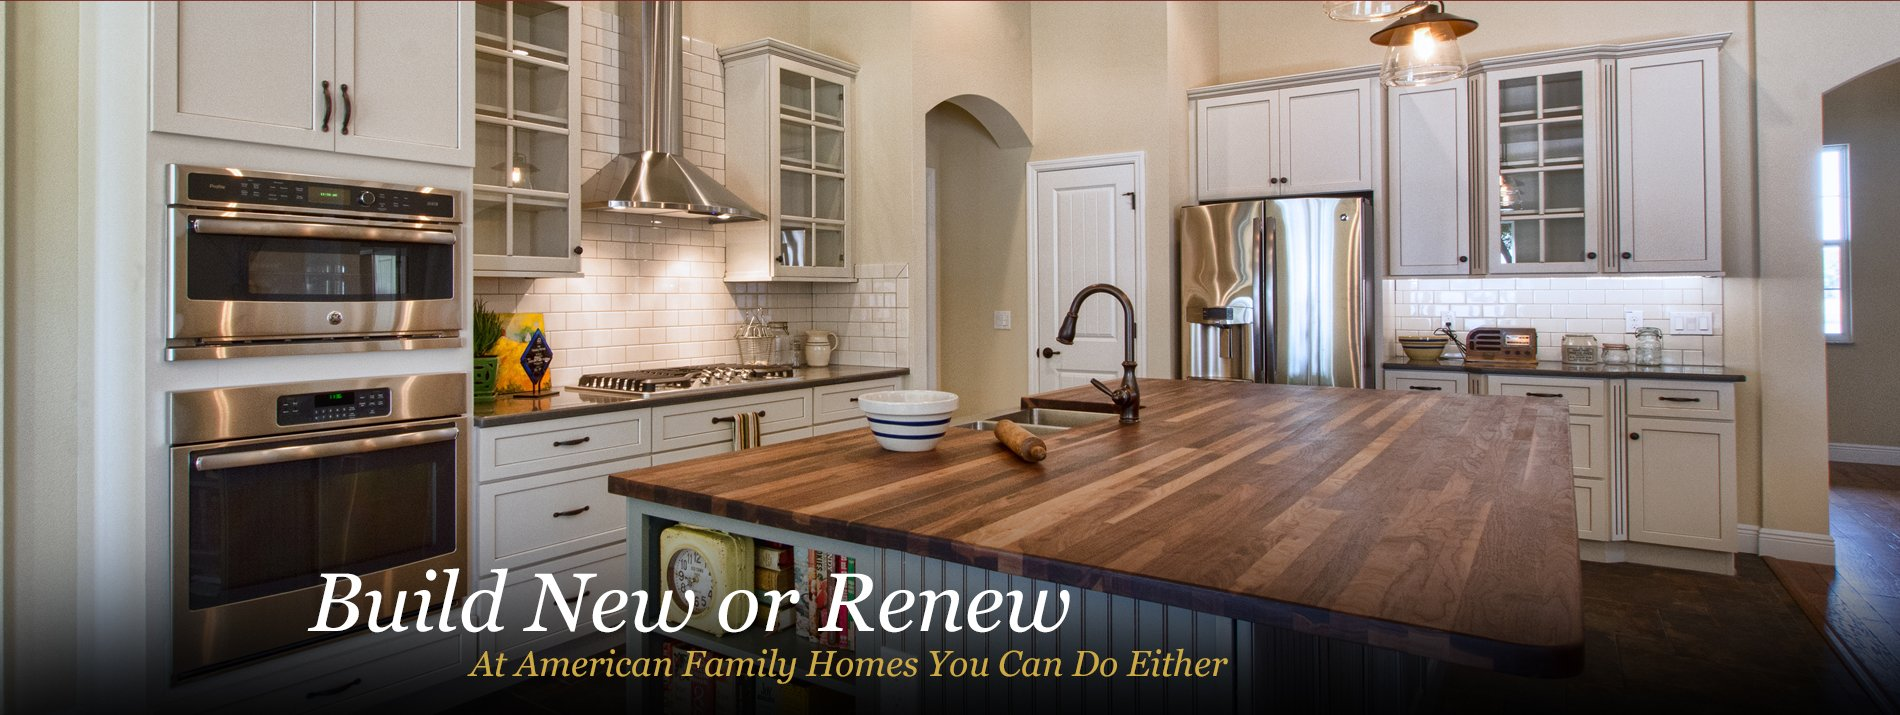 Central Florida Home Builders - American Family Homes